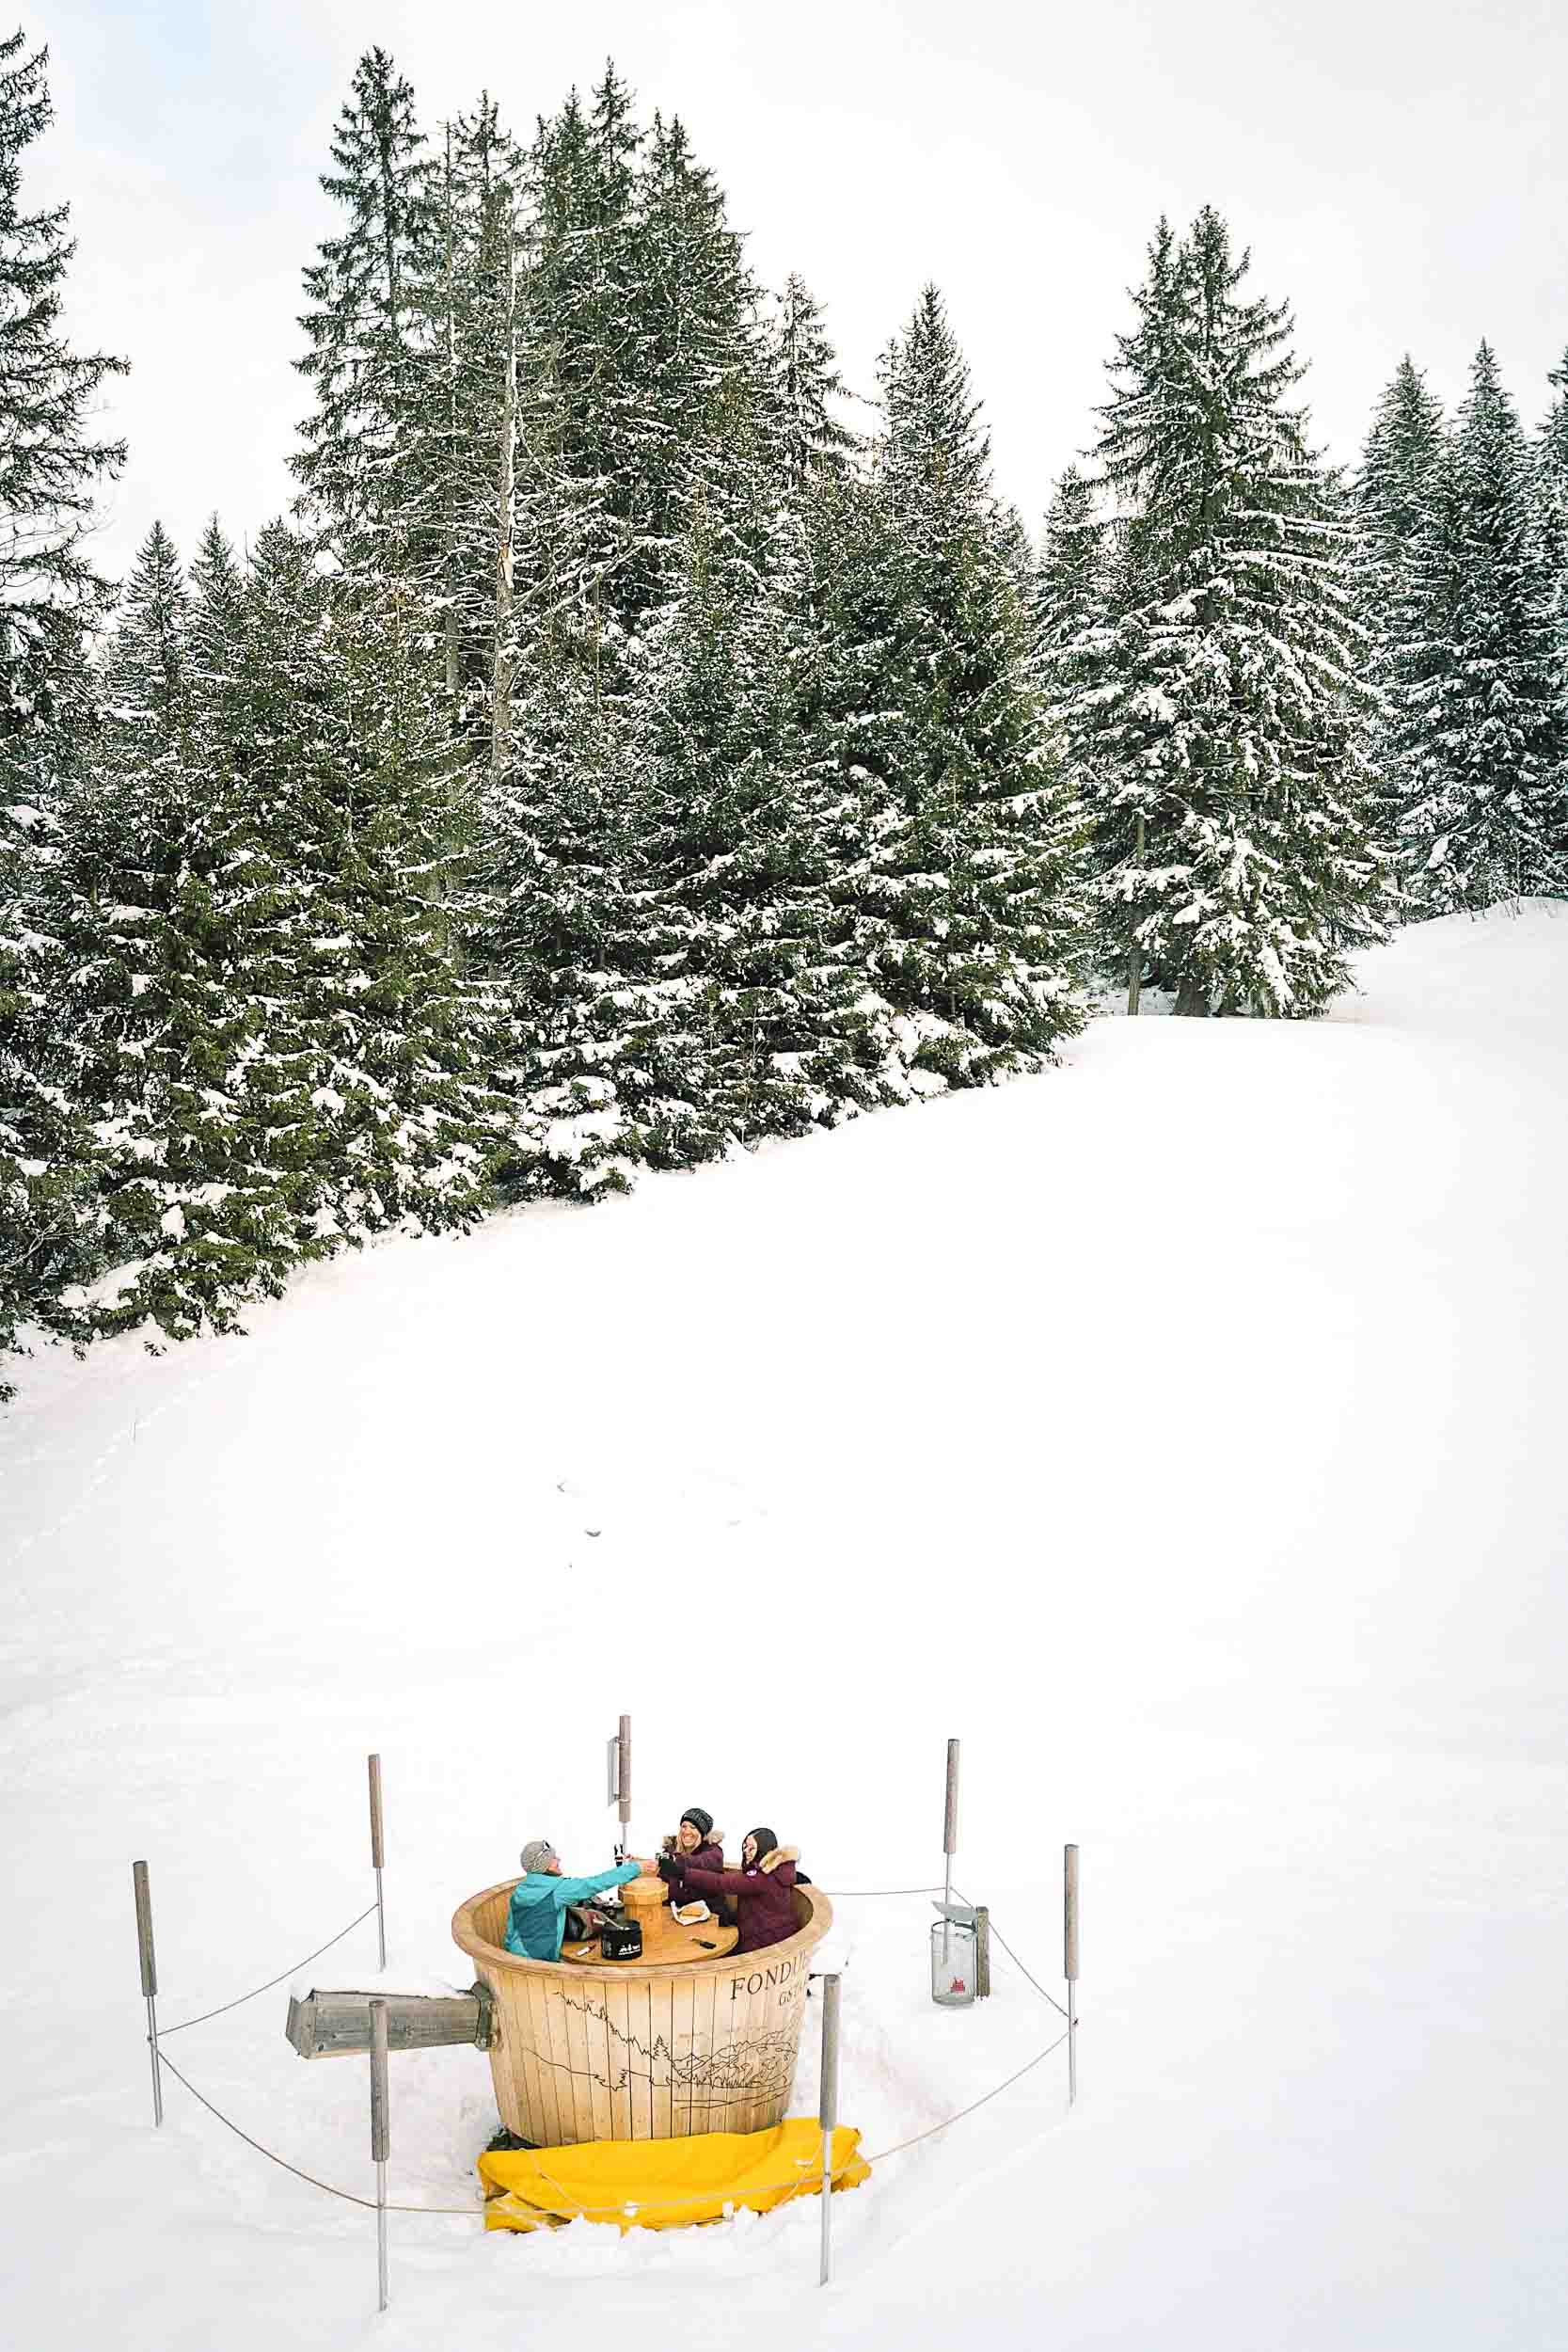 Eating fondue in the Swiss Alps in a large wooden fondue pot